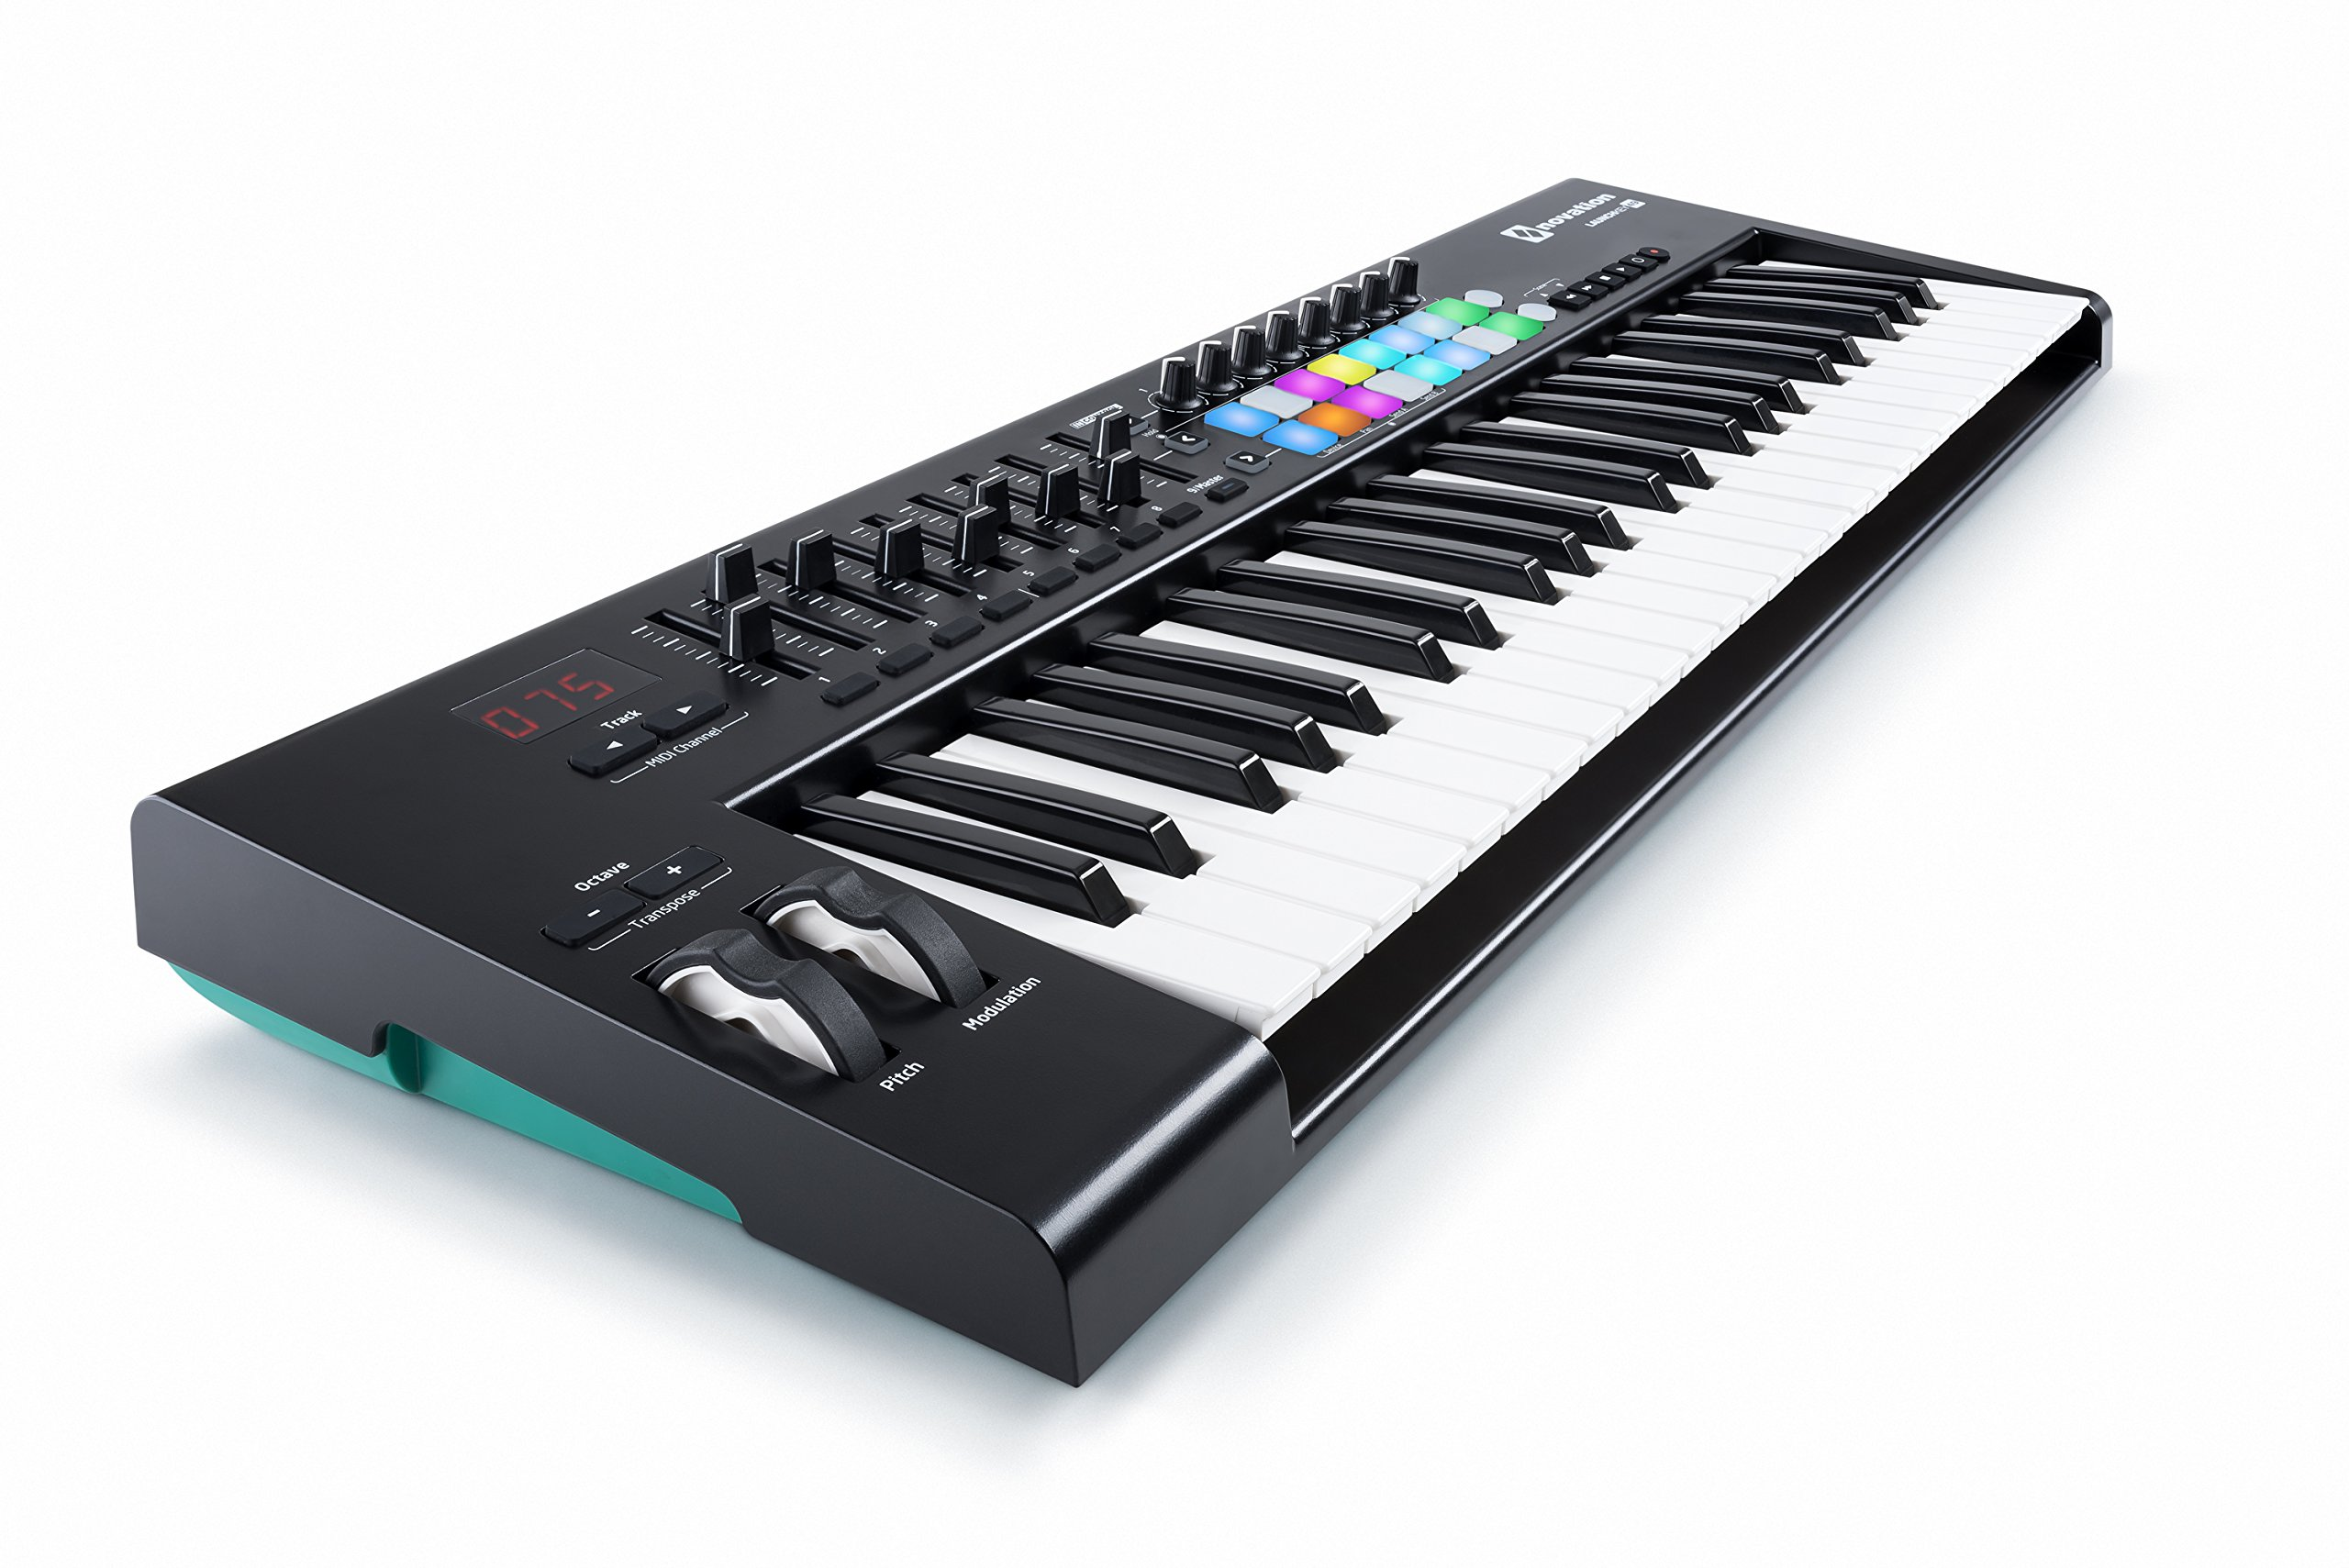 Novation Launchkey 49 USB Keyboard Controller for Ableton Live, 49-Note MK2 Version by Novation